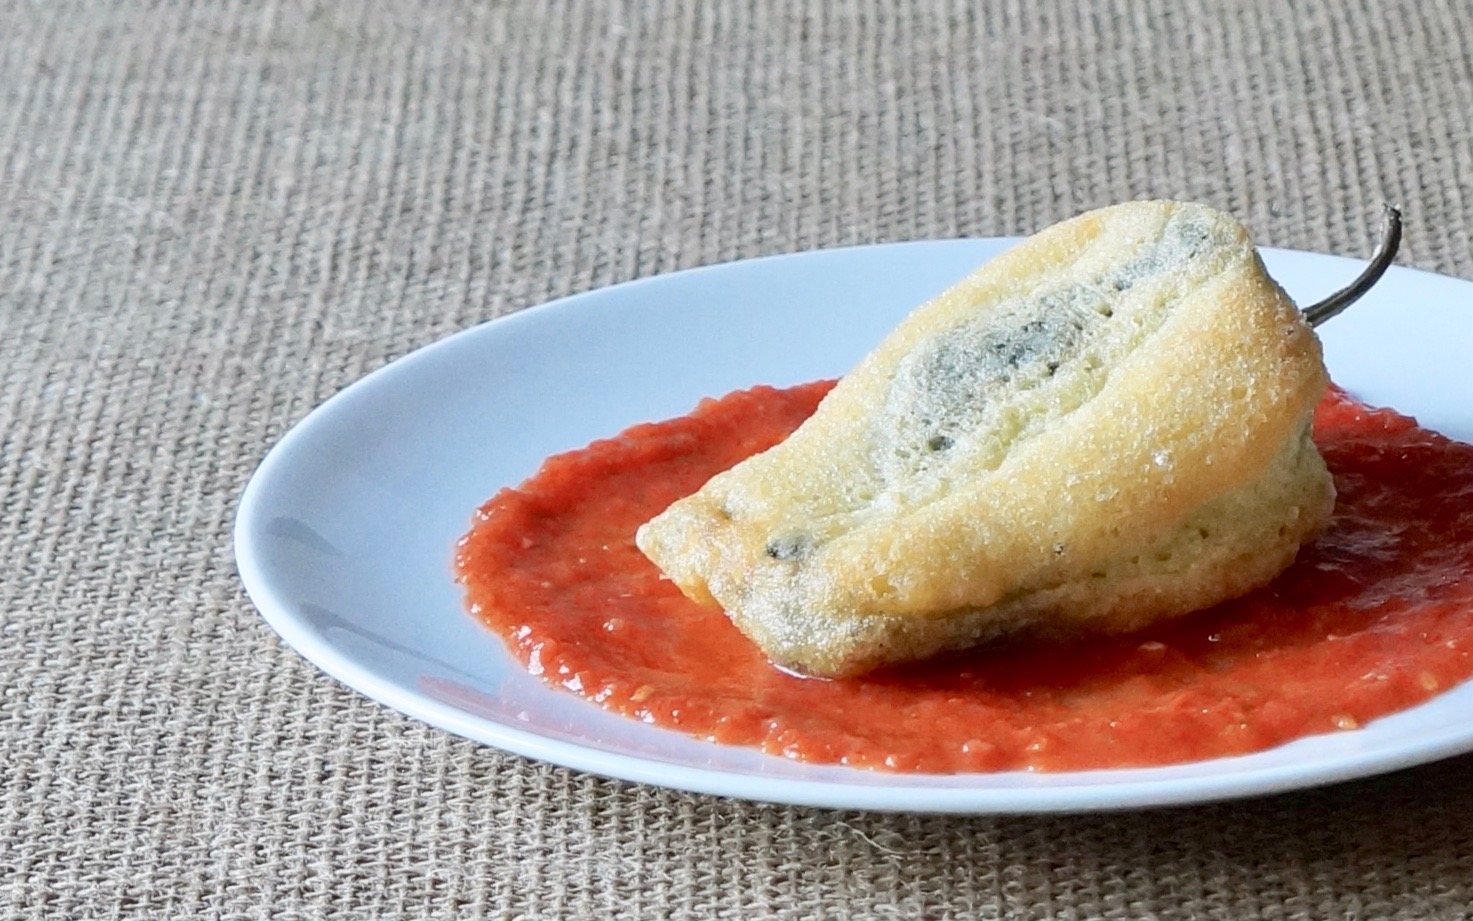 How-Do-You-Make-Chiles-Rellenos-Rebecca-Gordon-Editor-In-Chief-Buttermilk-Lipstick-Culinary-Entertaining-Techniques-RebeccaGordon-Pastry-Chef-Southern-Entertaining-Birmingham-Alabama